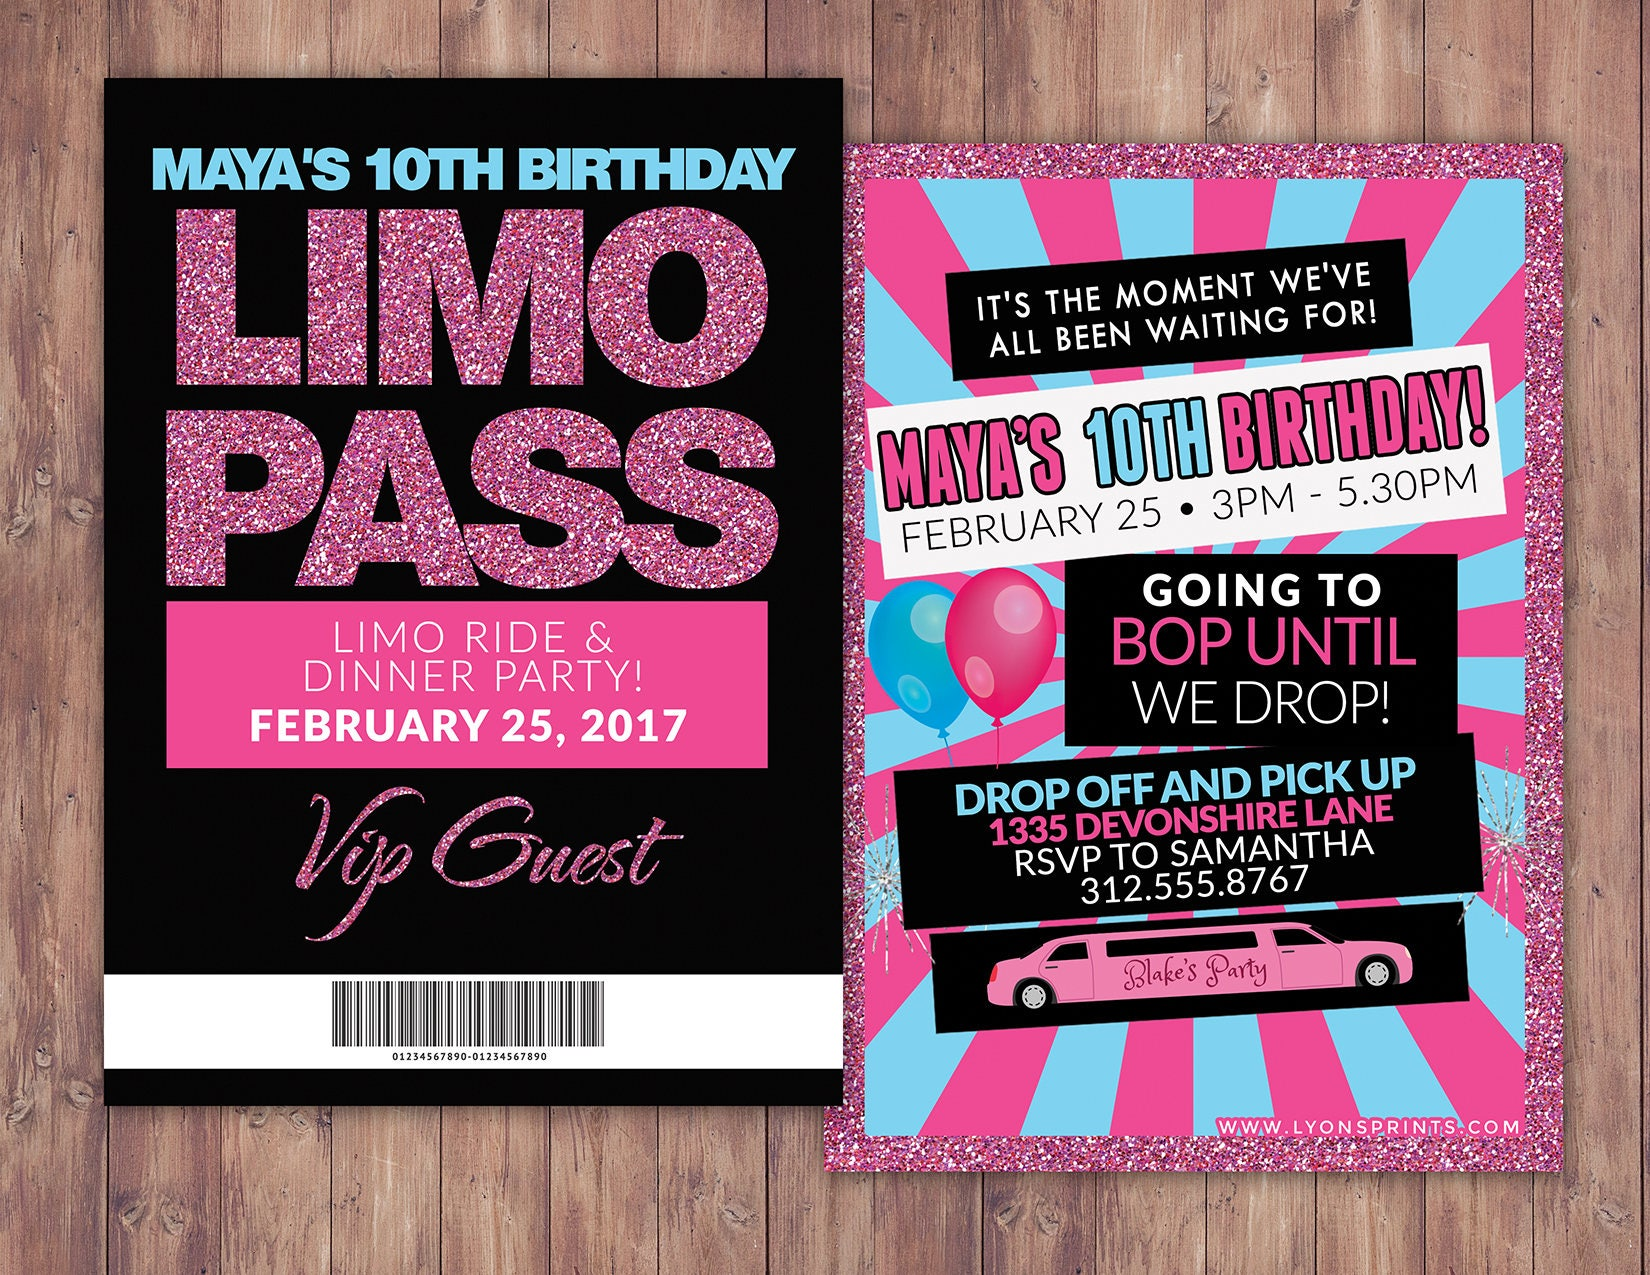 VIP PASS, Limo pass, Birthday party, 21st birthday, backstage pass ...